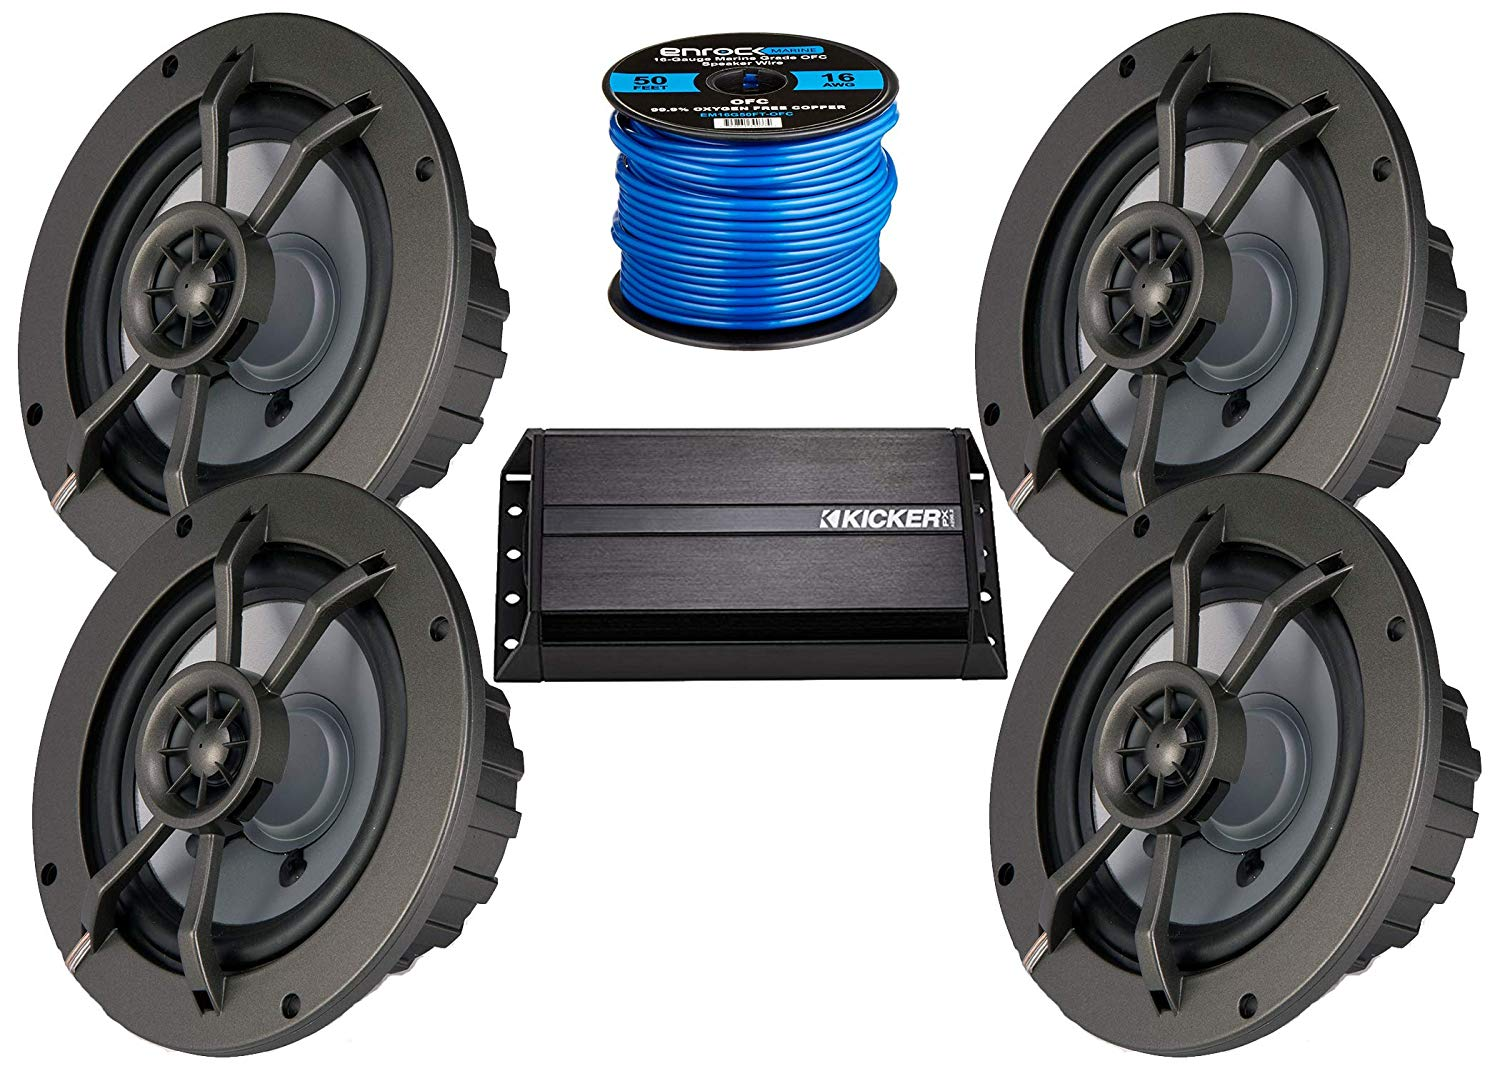 "Kicker New 2x50-Watt Full-Range Bluetooth Stereo Amplified Controller, 4X 4 Marine Coaxial 2-Ohm Speakers w/ 1/2"" Tweeters, Enrock Marine 50 Ft 16-G Tinned Speaker Wire"